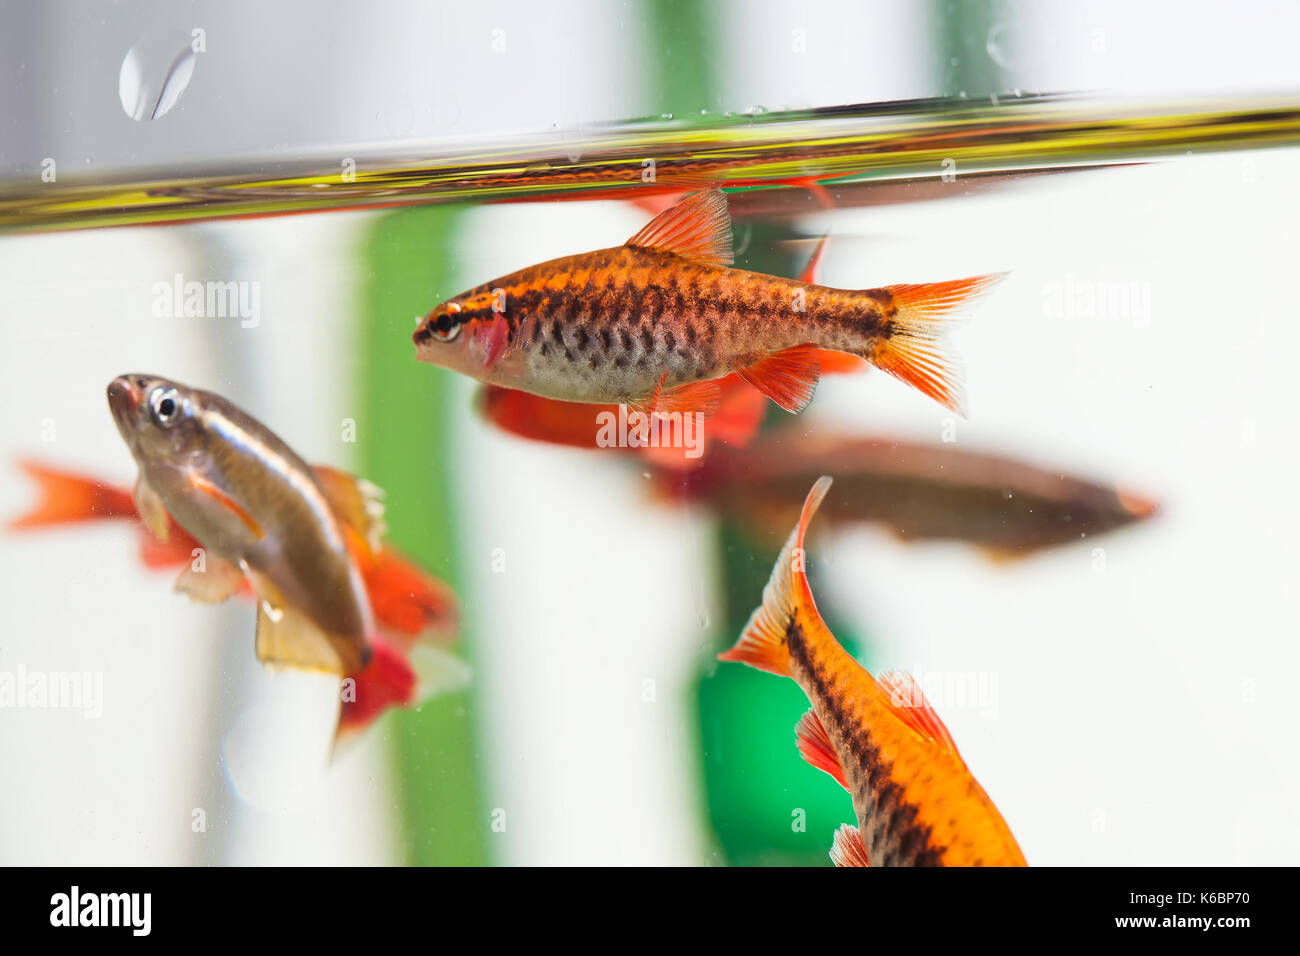 Group beautiful aquarium fishes red orange color. Cherry barb fishes macro nature concept. shallow depth of field, selective focus photo Stock Photo